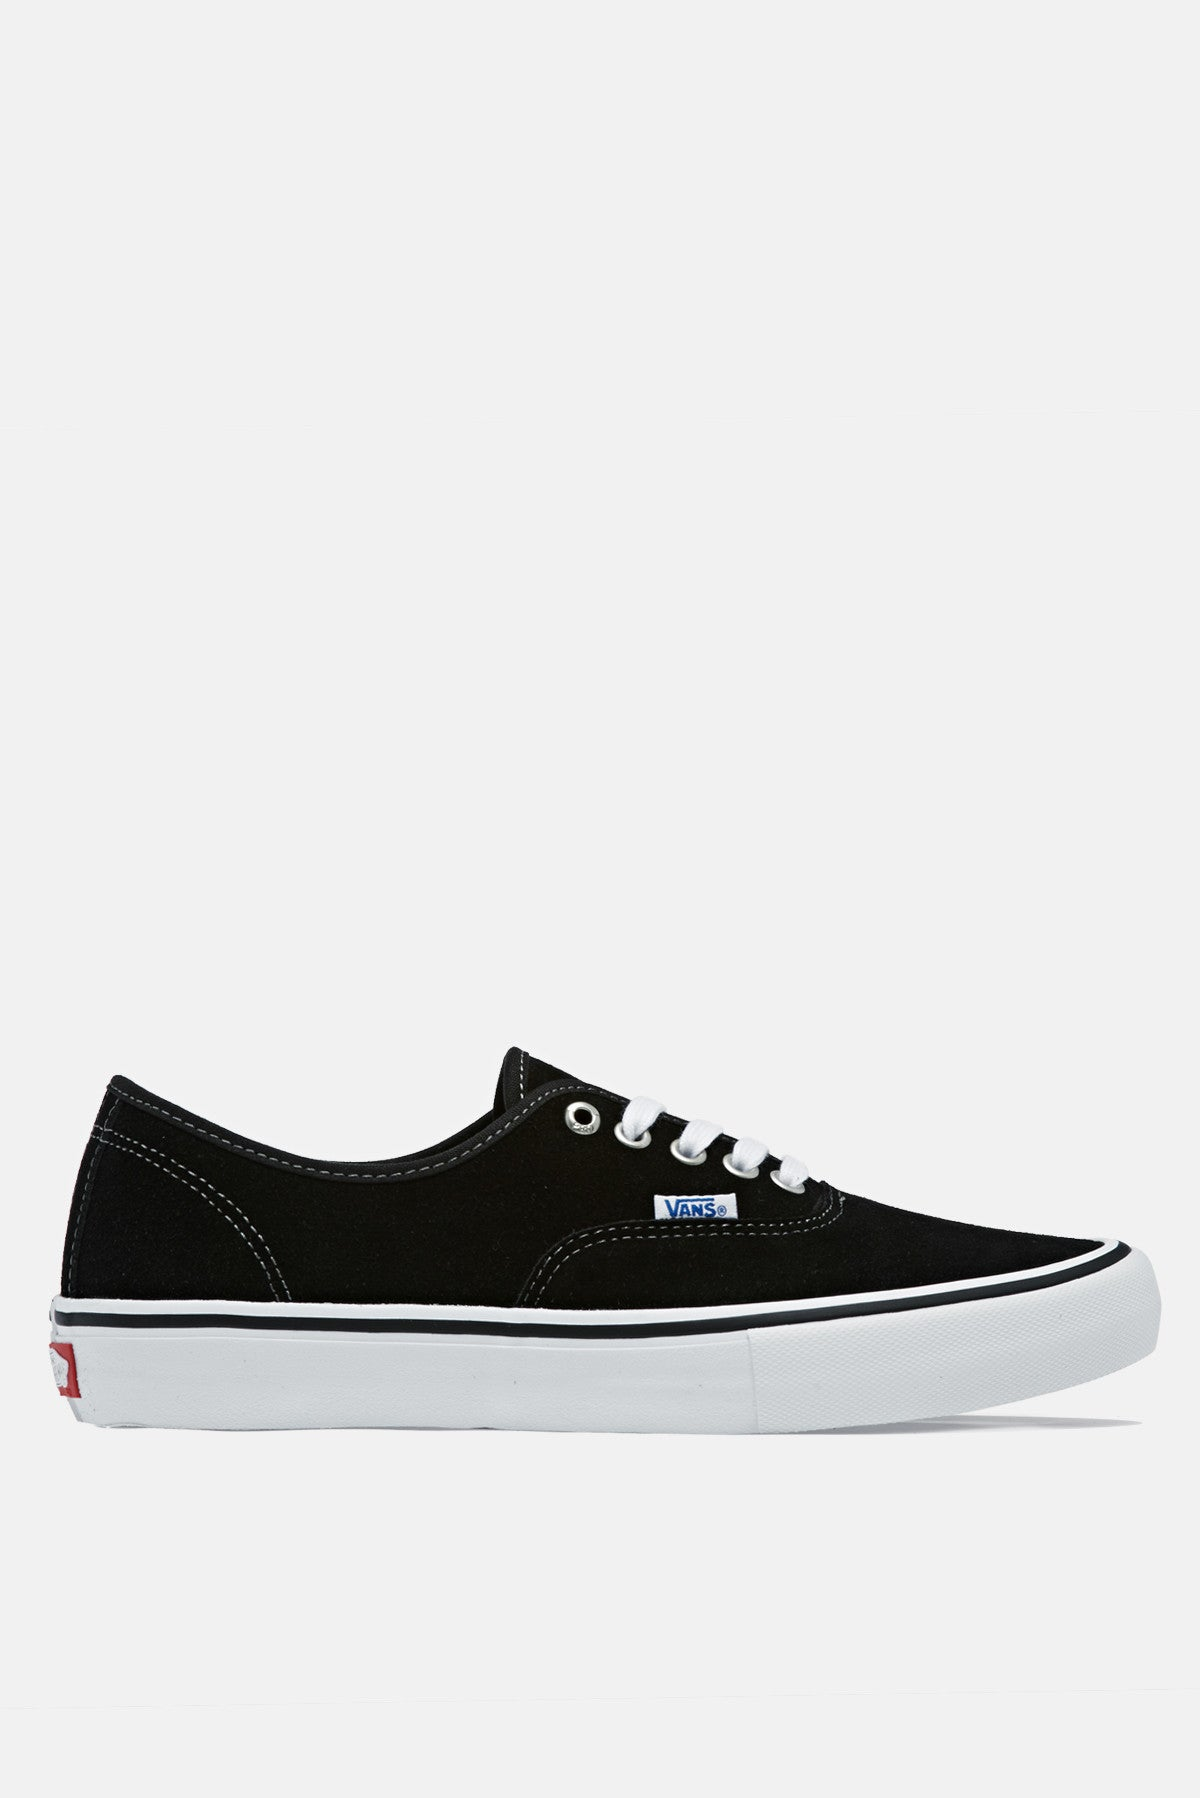 043a741a6d Vans Authentic Pro Shoes available from Priory